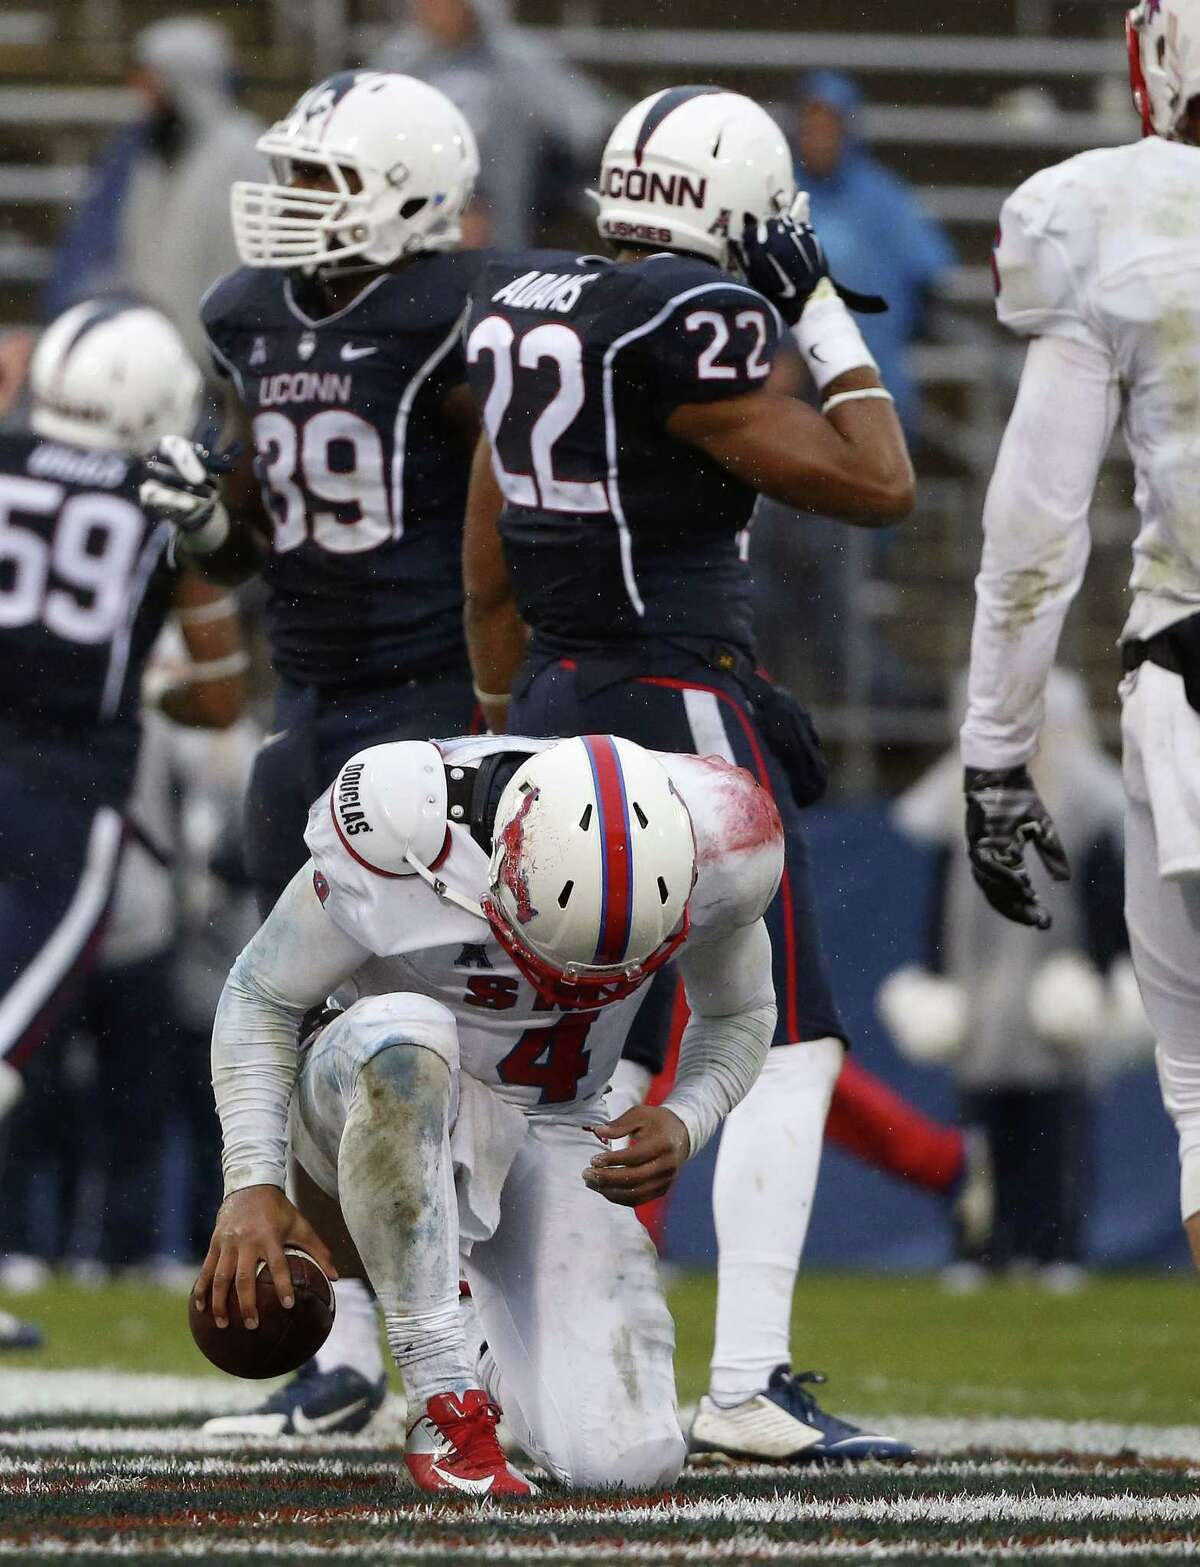 SMU quarterback Matt Davis bows his head after scoring a touchdown during the third quarter of the Mustangs' 27-20 win over UConn on Saturday afternoon at Rentschler Field in East Hartford.